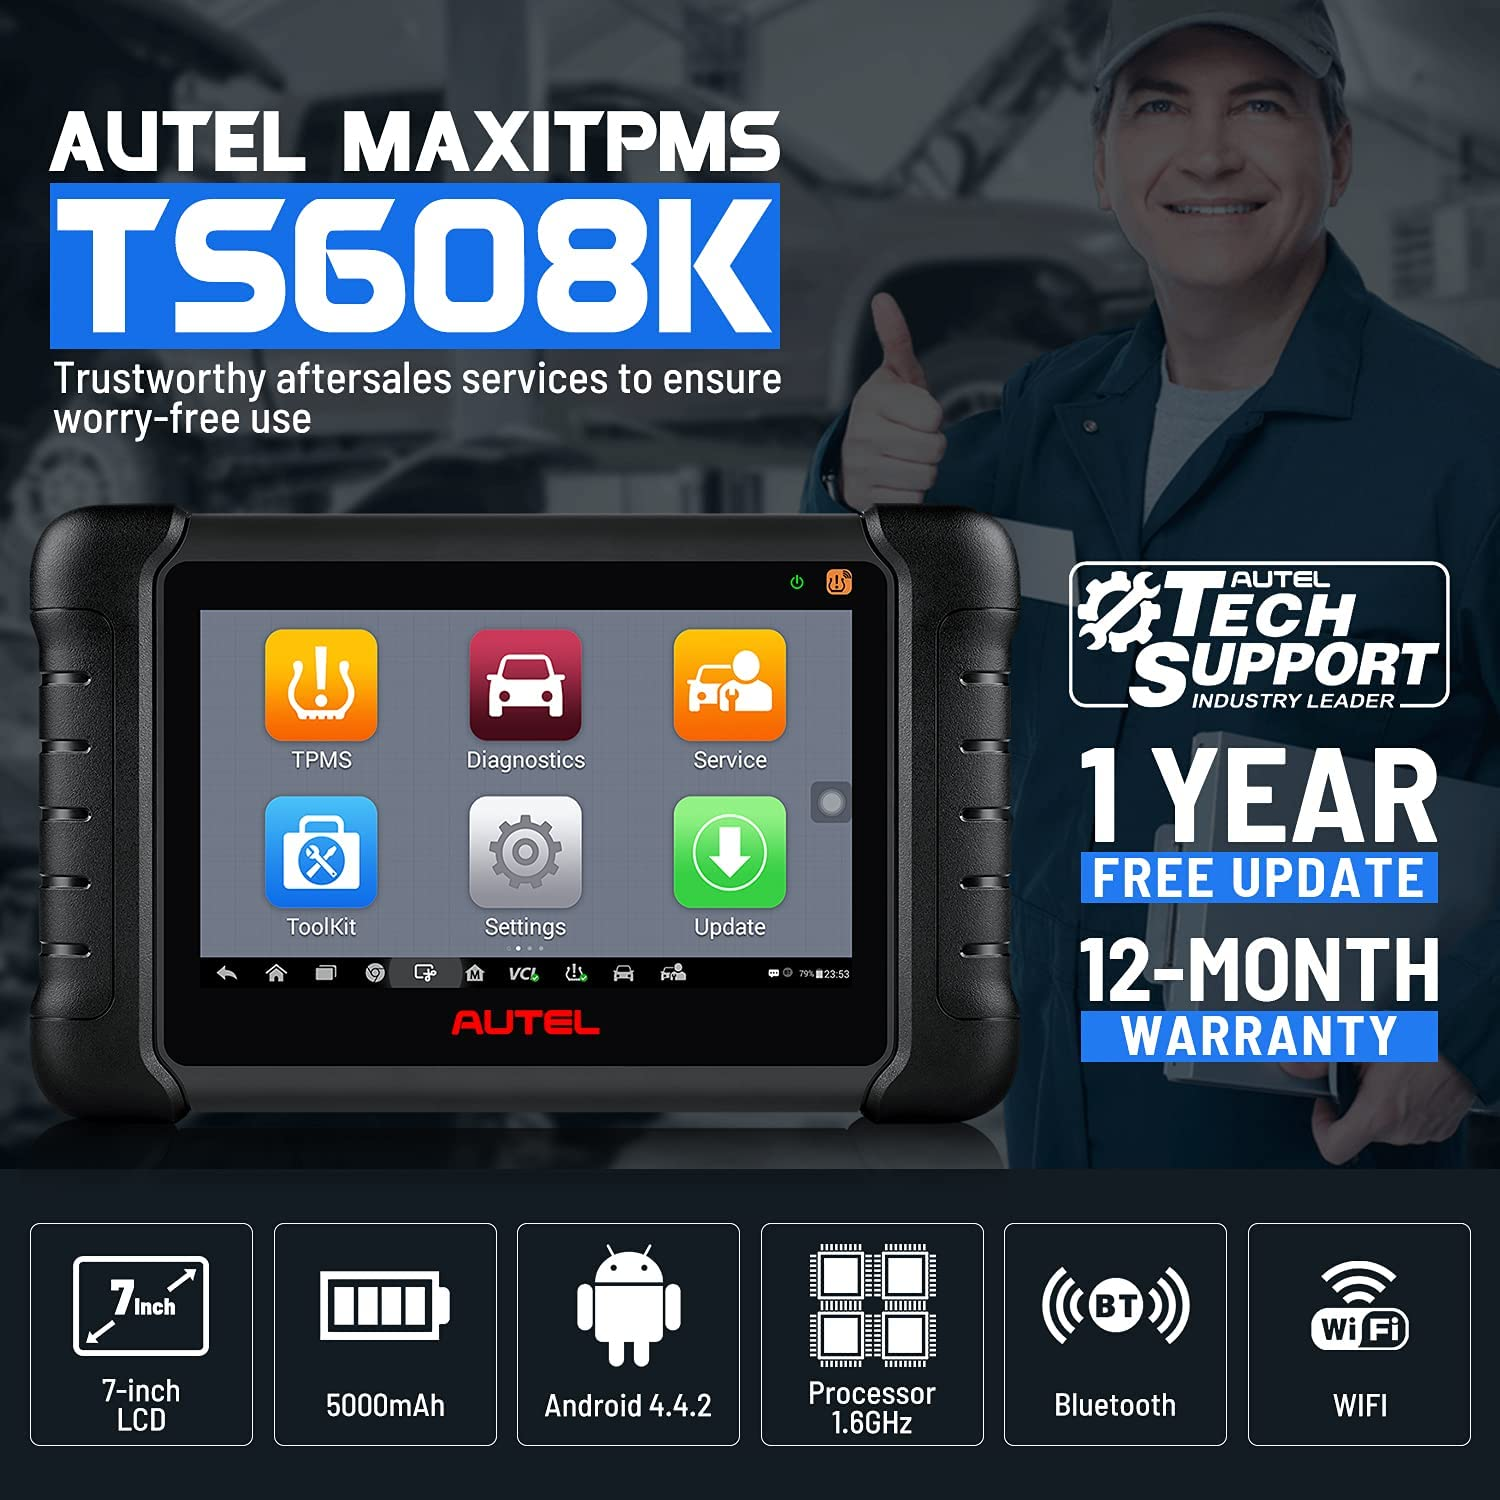 Autel MaxiTPMS TS608K TPMS Diagnostic Scan Tool Trustworthy aftersales services to ensure worry-free use